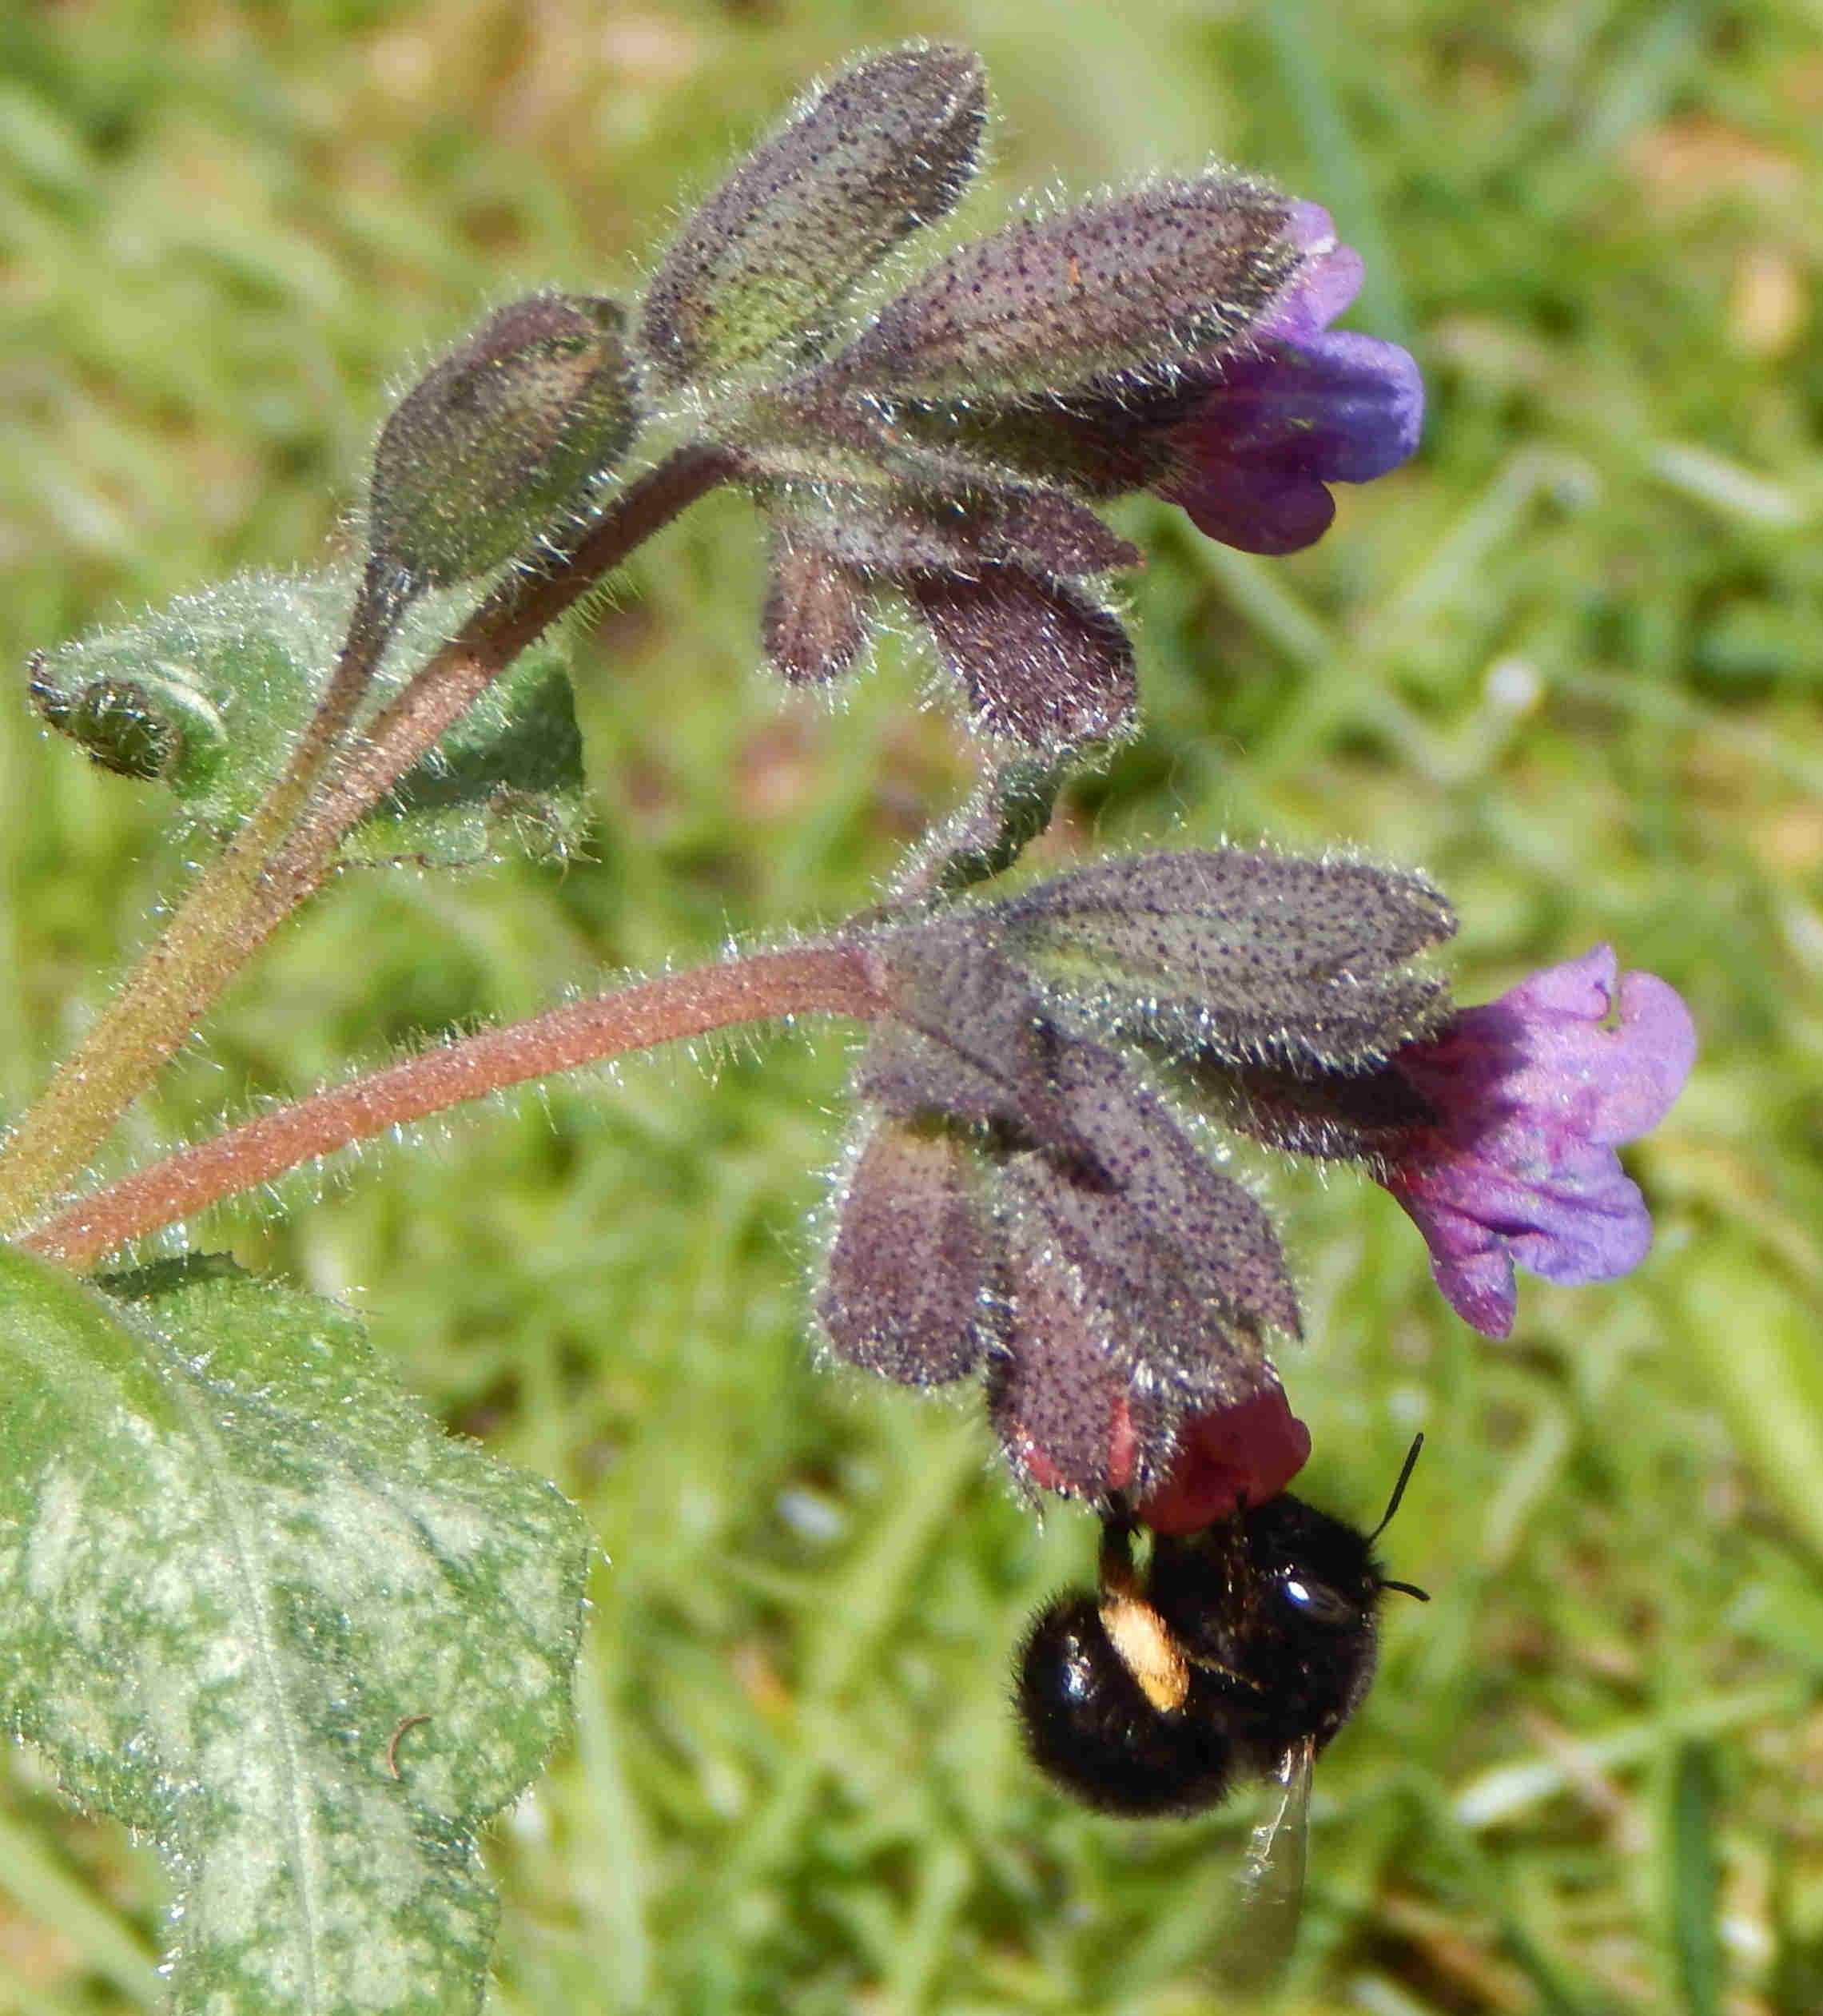 Anthophora plumipes - hairy-footed flower bee female on Pulmonaria